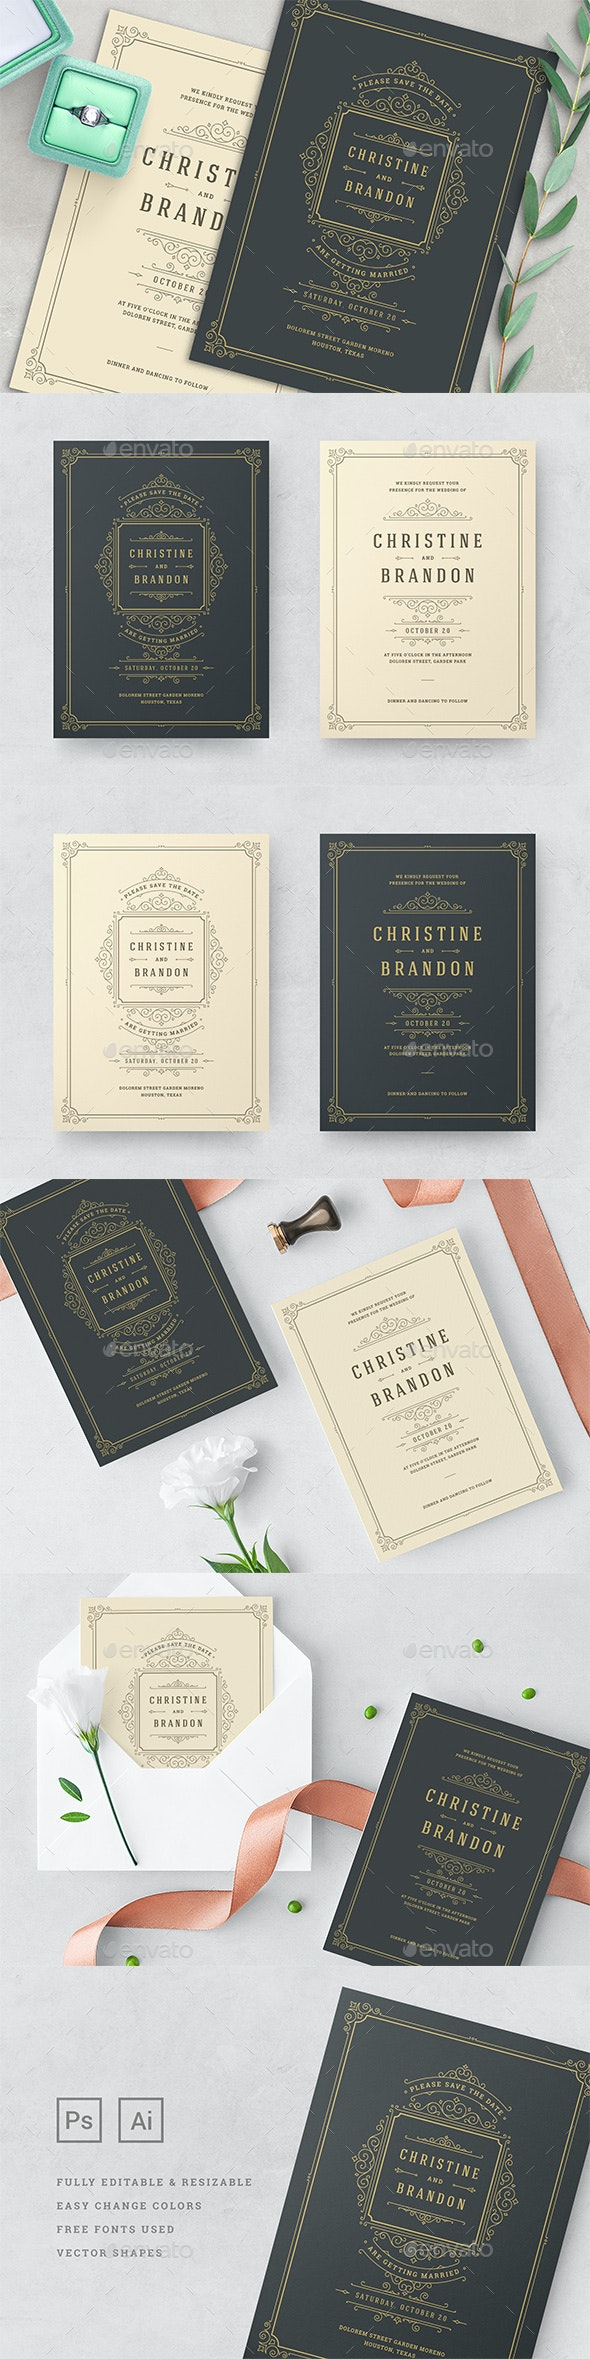 Wedding Invitations Cards Templates - Weddings Cards & Invites